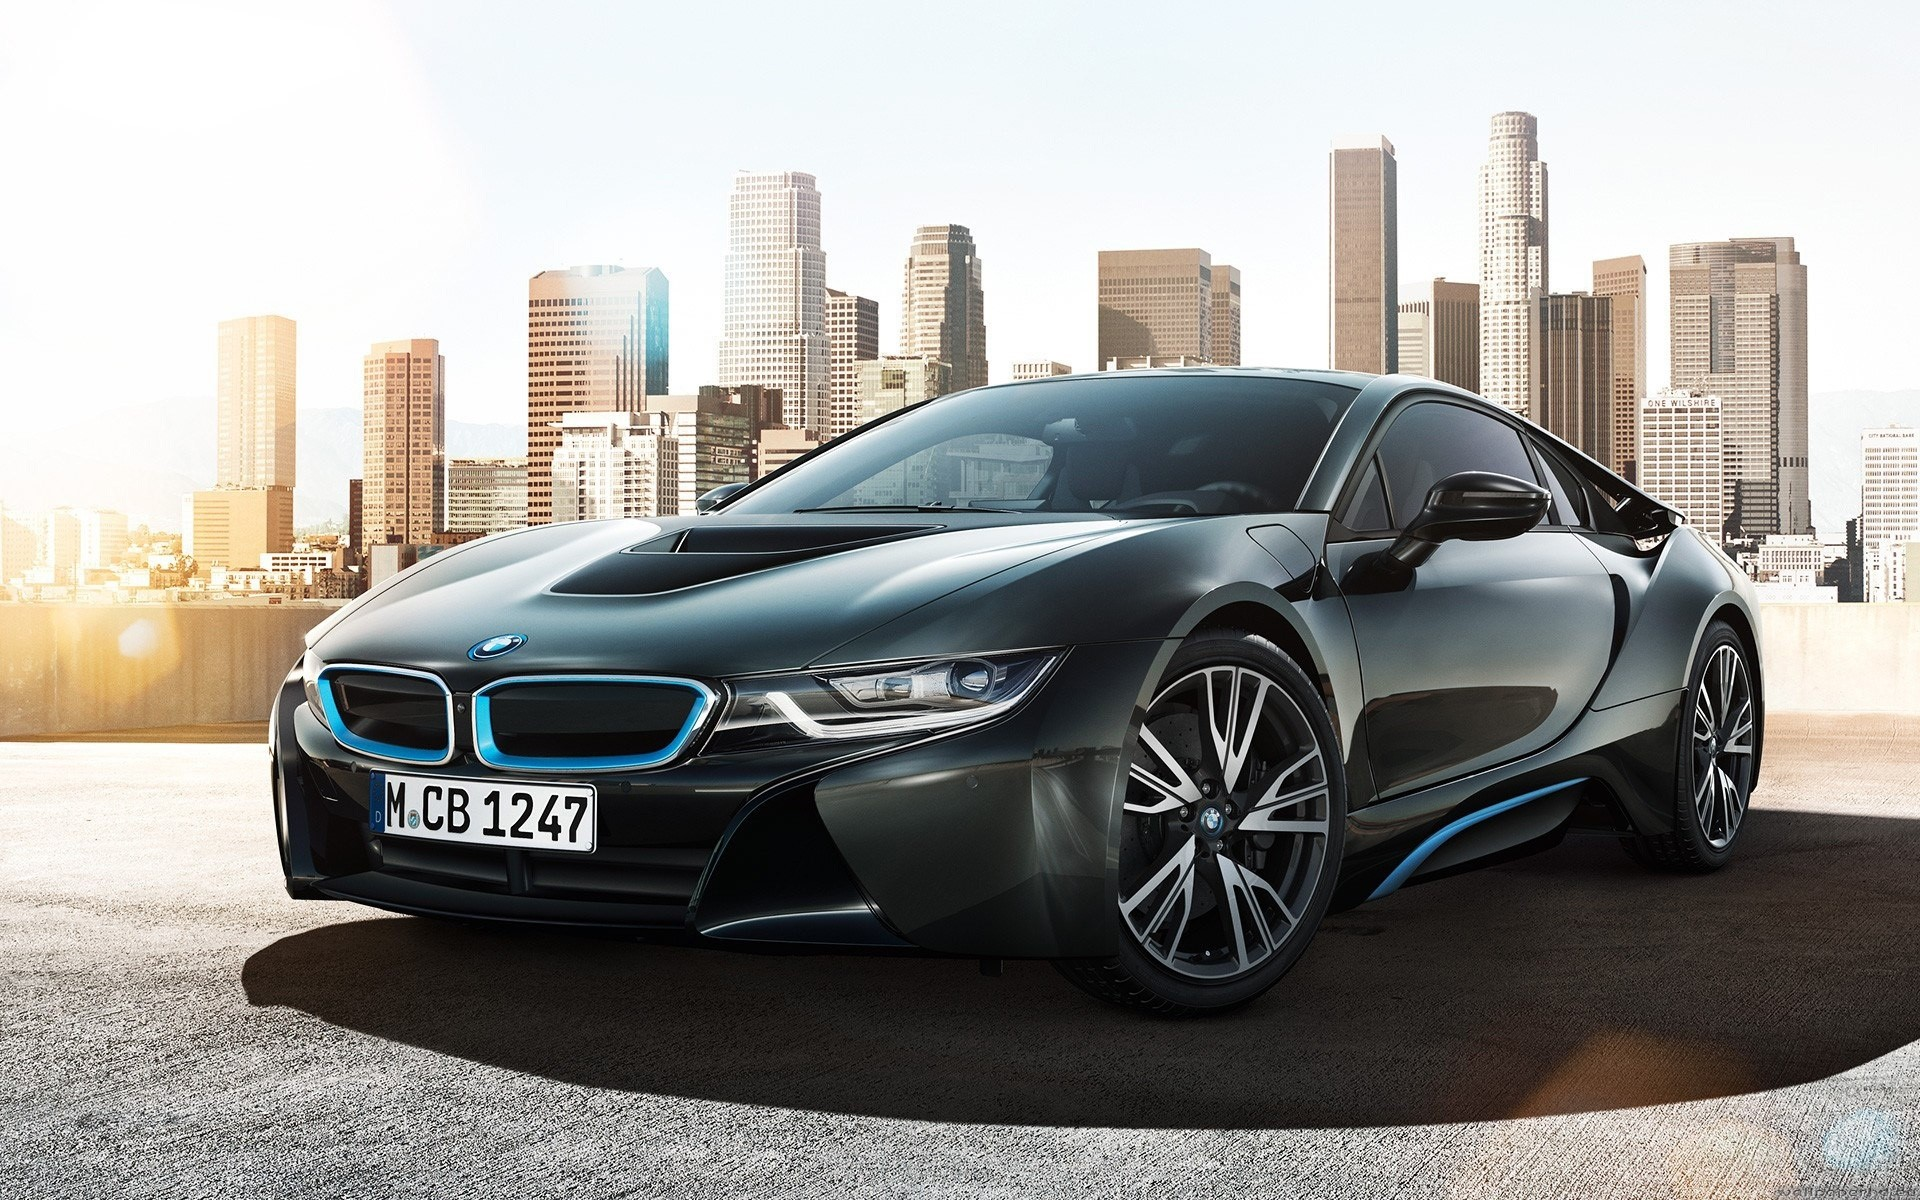 Wallpaper BMW i8 Concept